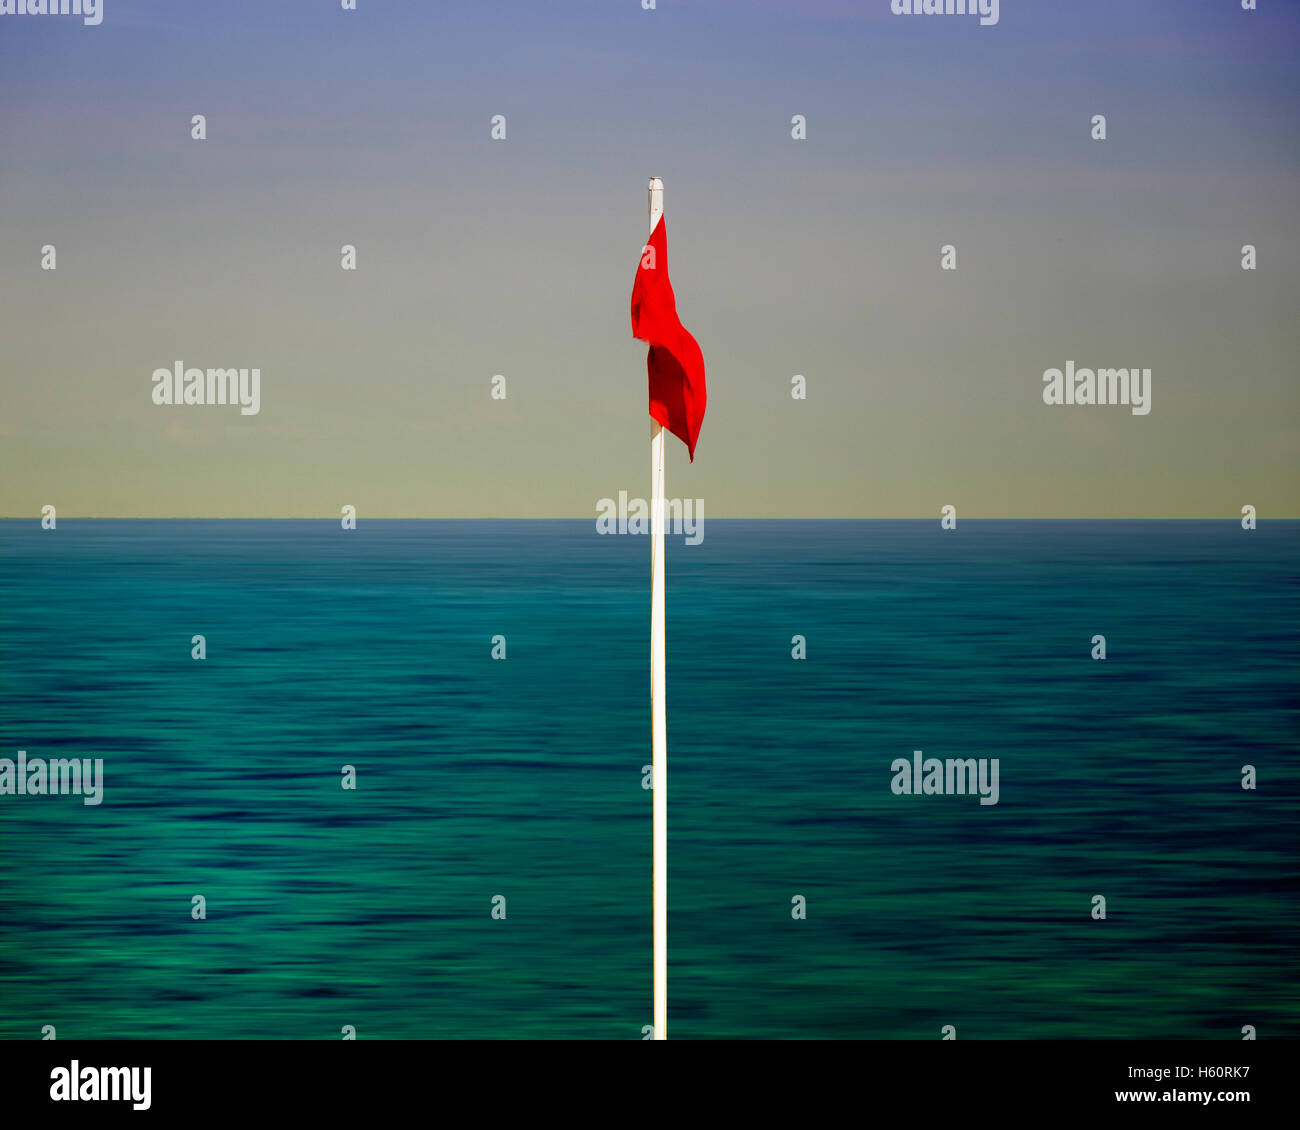 FINE ART: The Red Flag - Stock Image